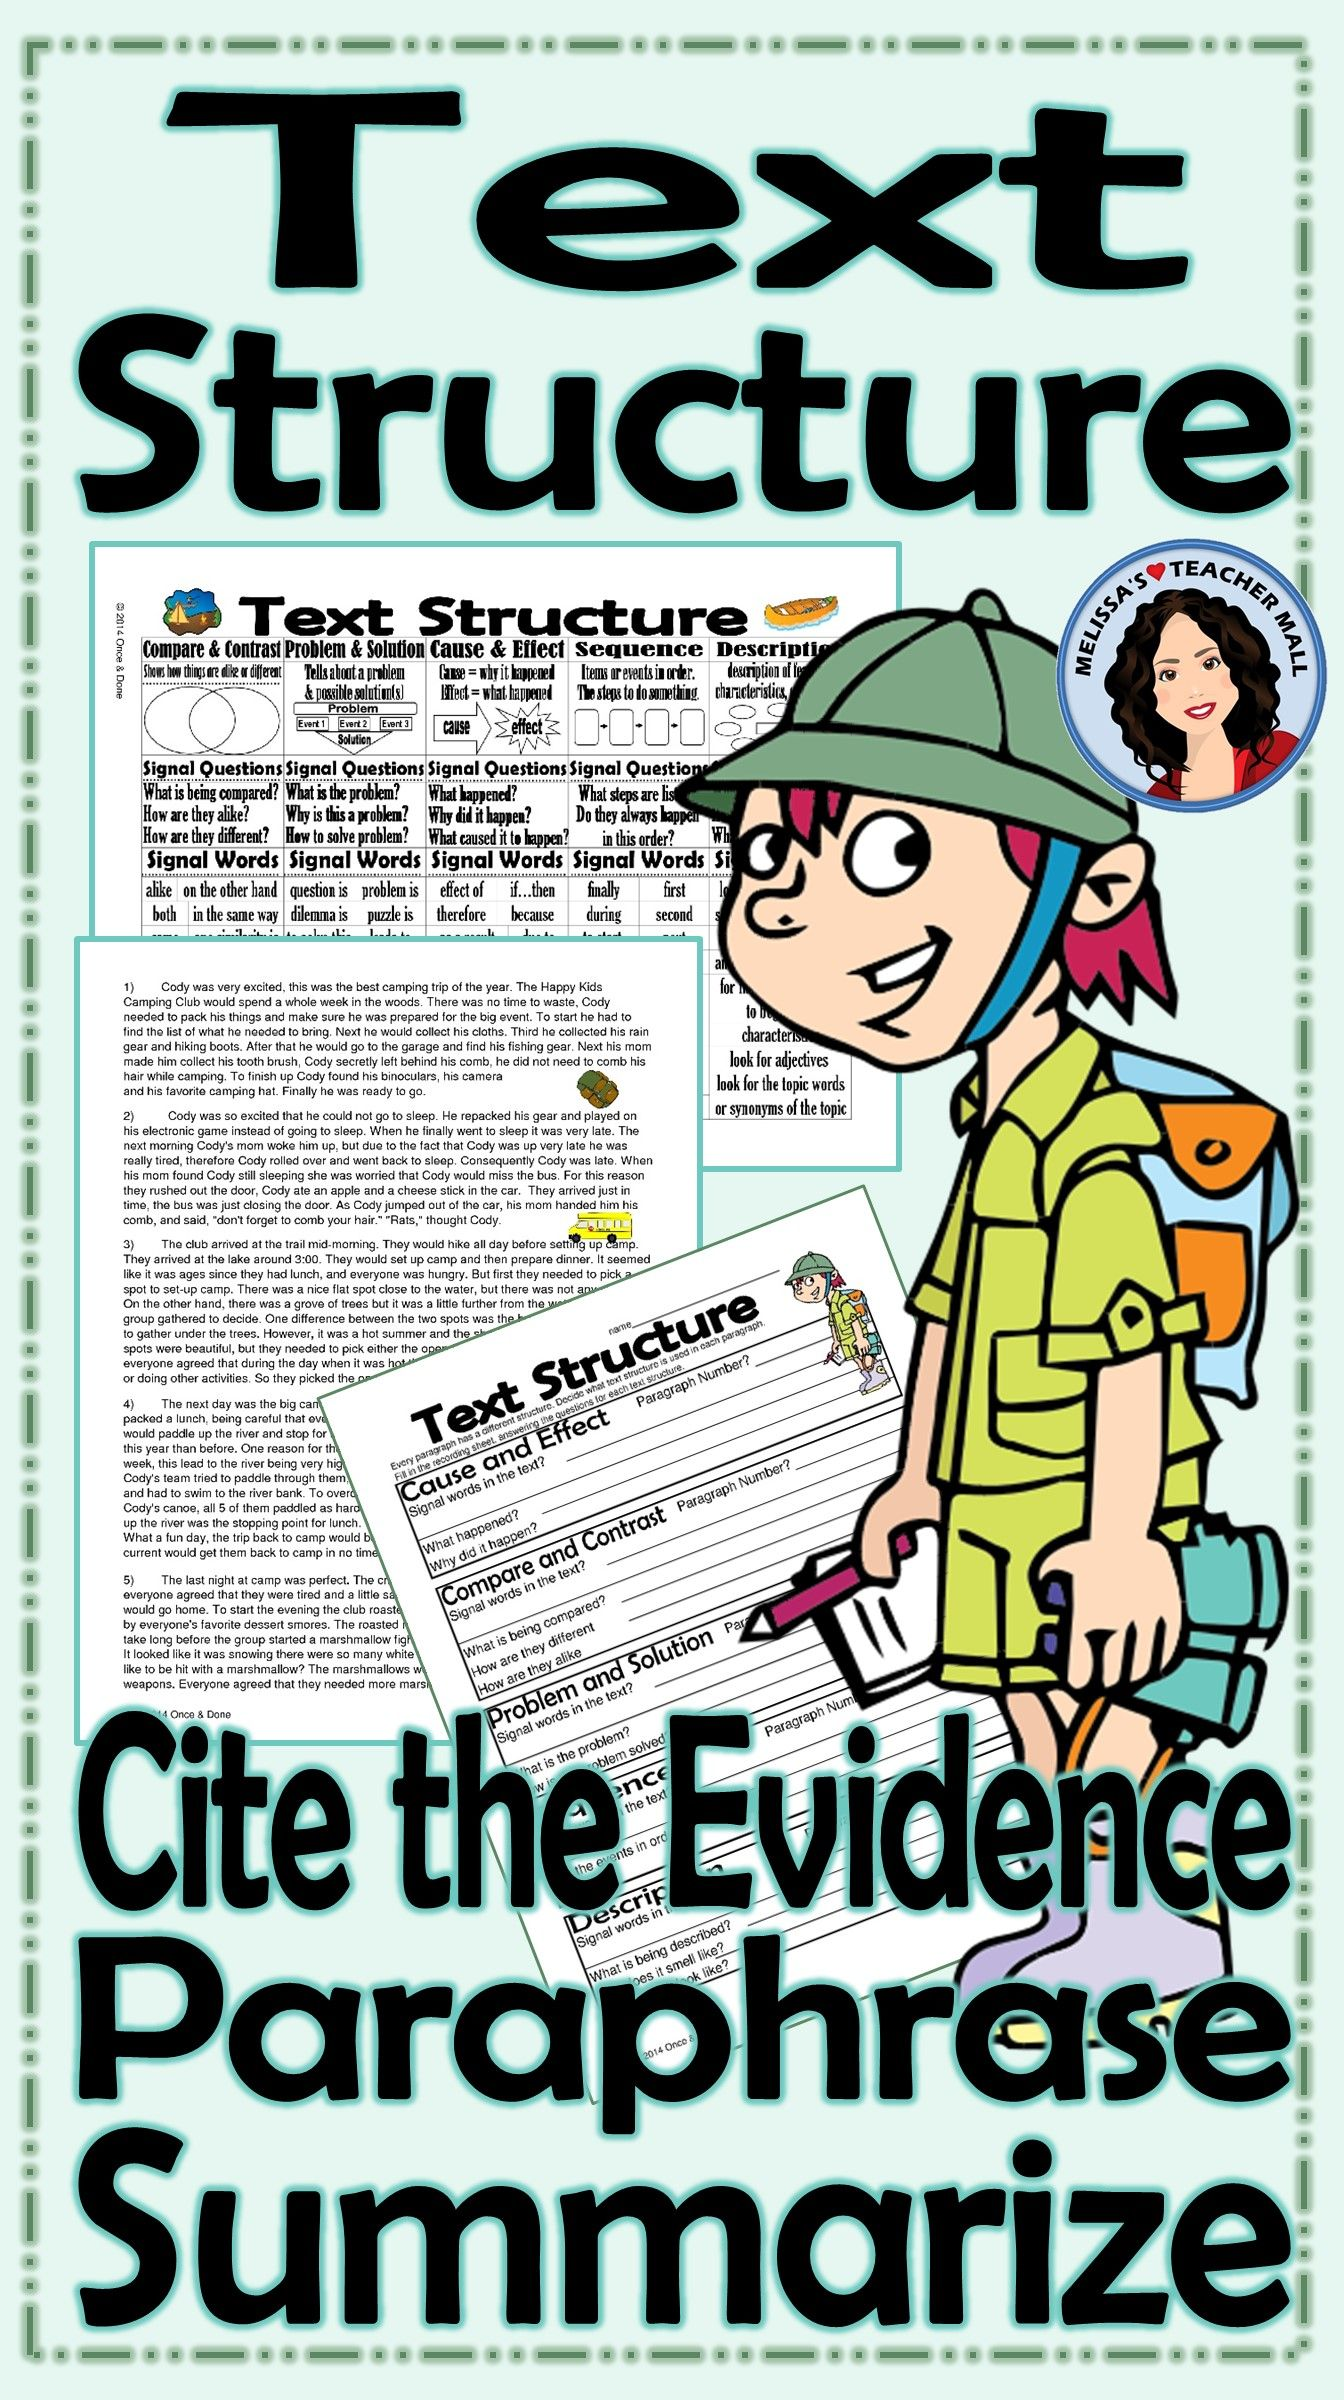 Text Structure Summarize Paraphrase Cite The Evidence